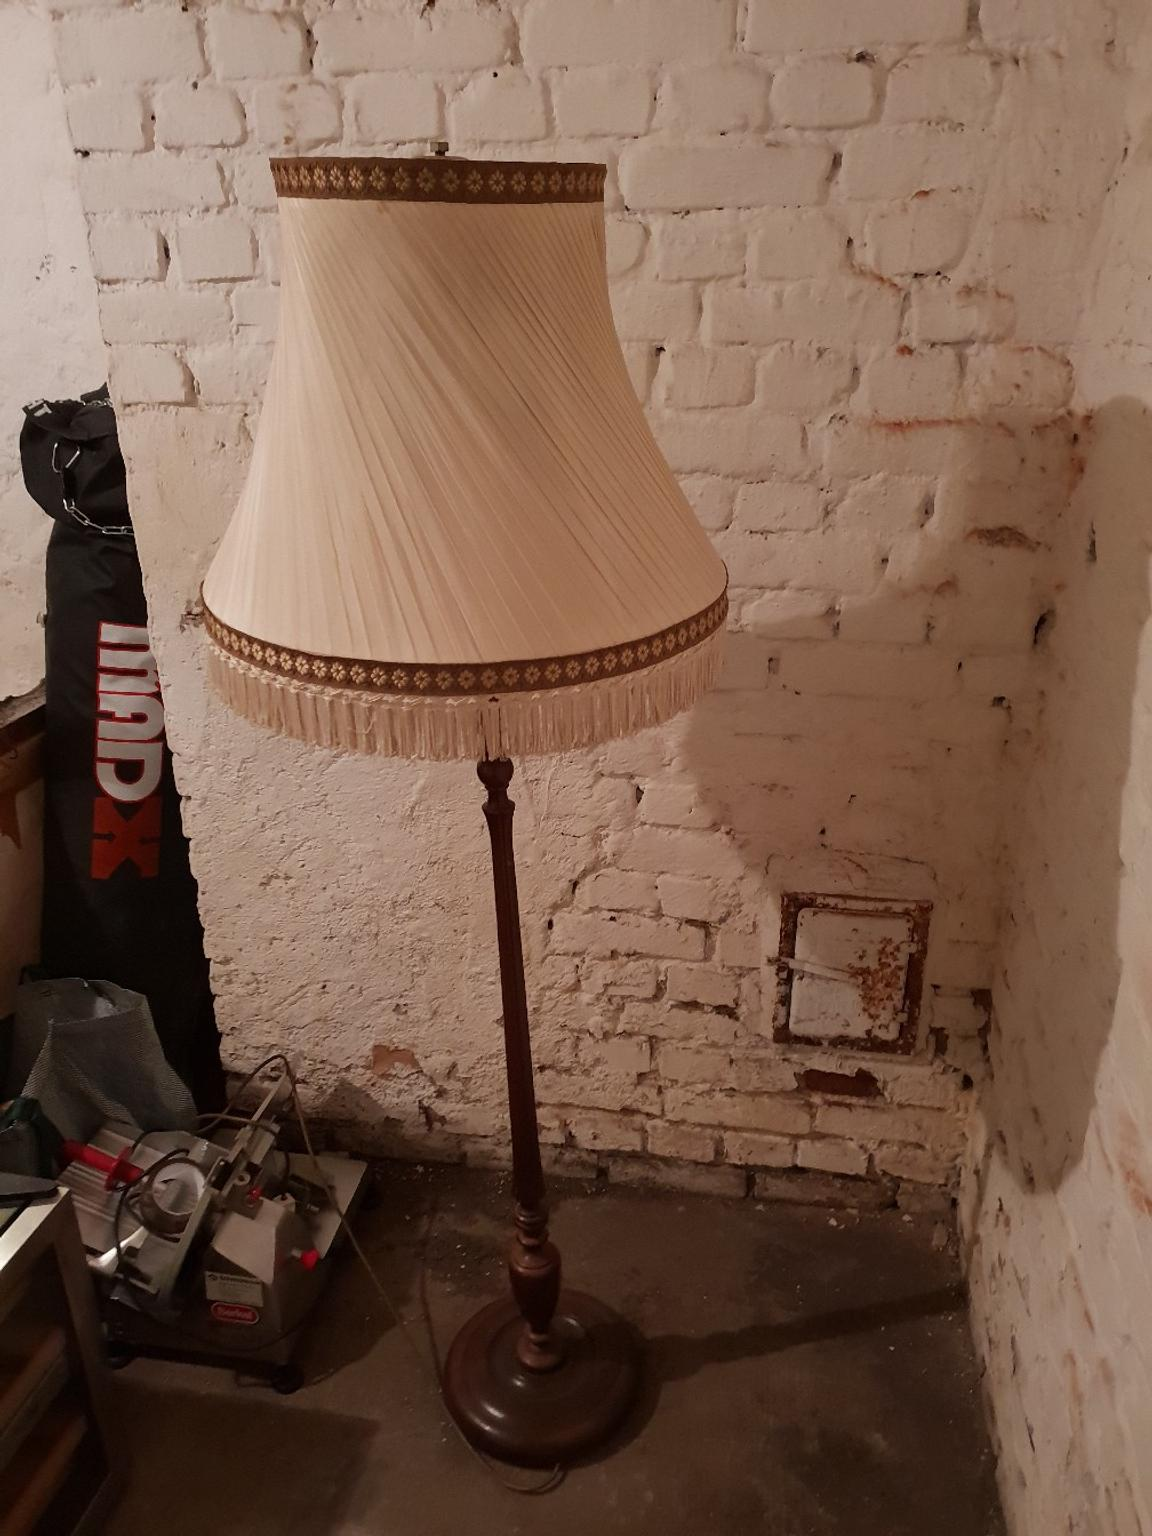 Retro Schirmlampe In 40597 Benrath For 10 00 For Sale Shpock